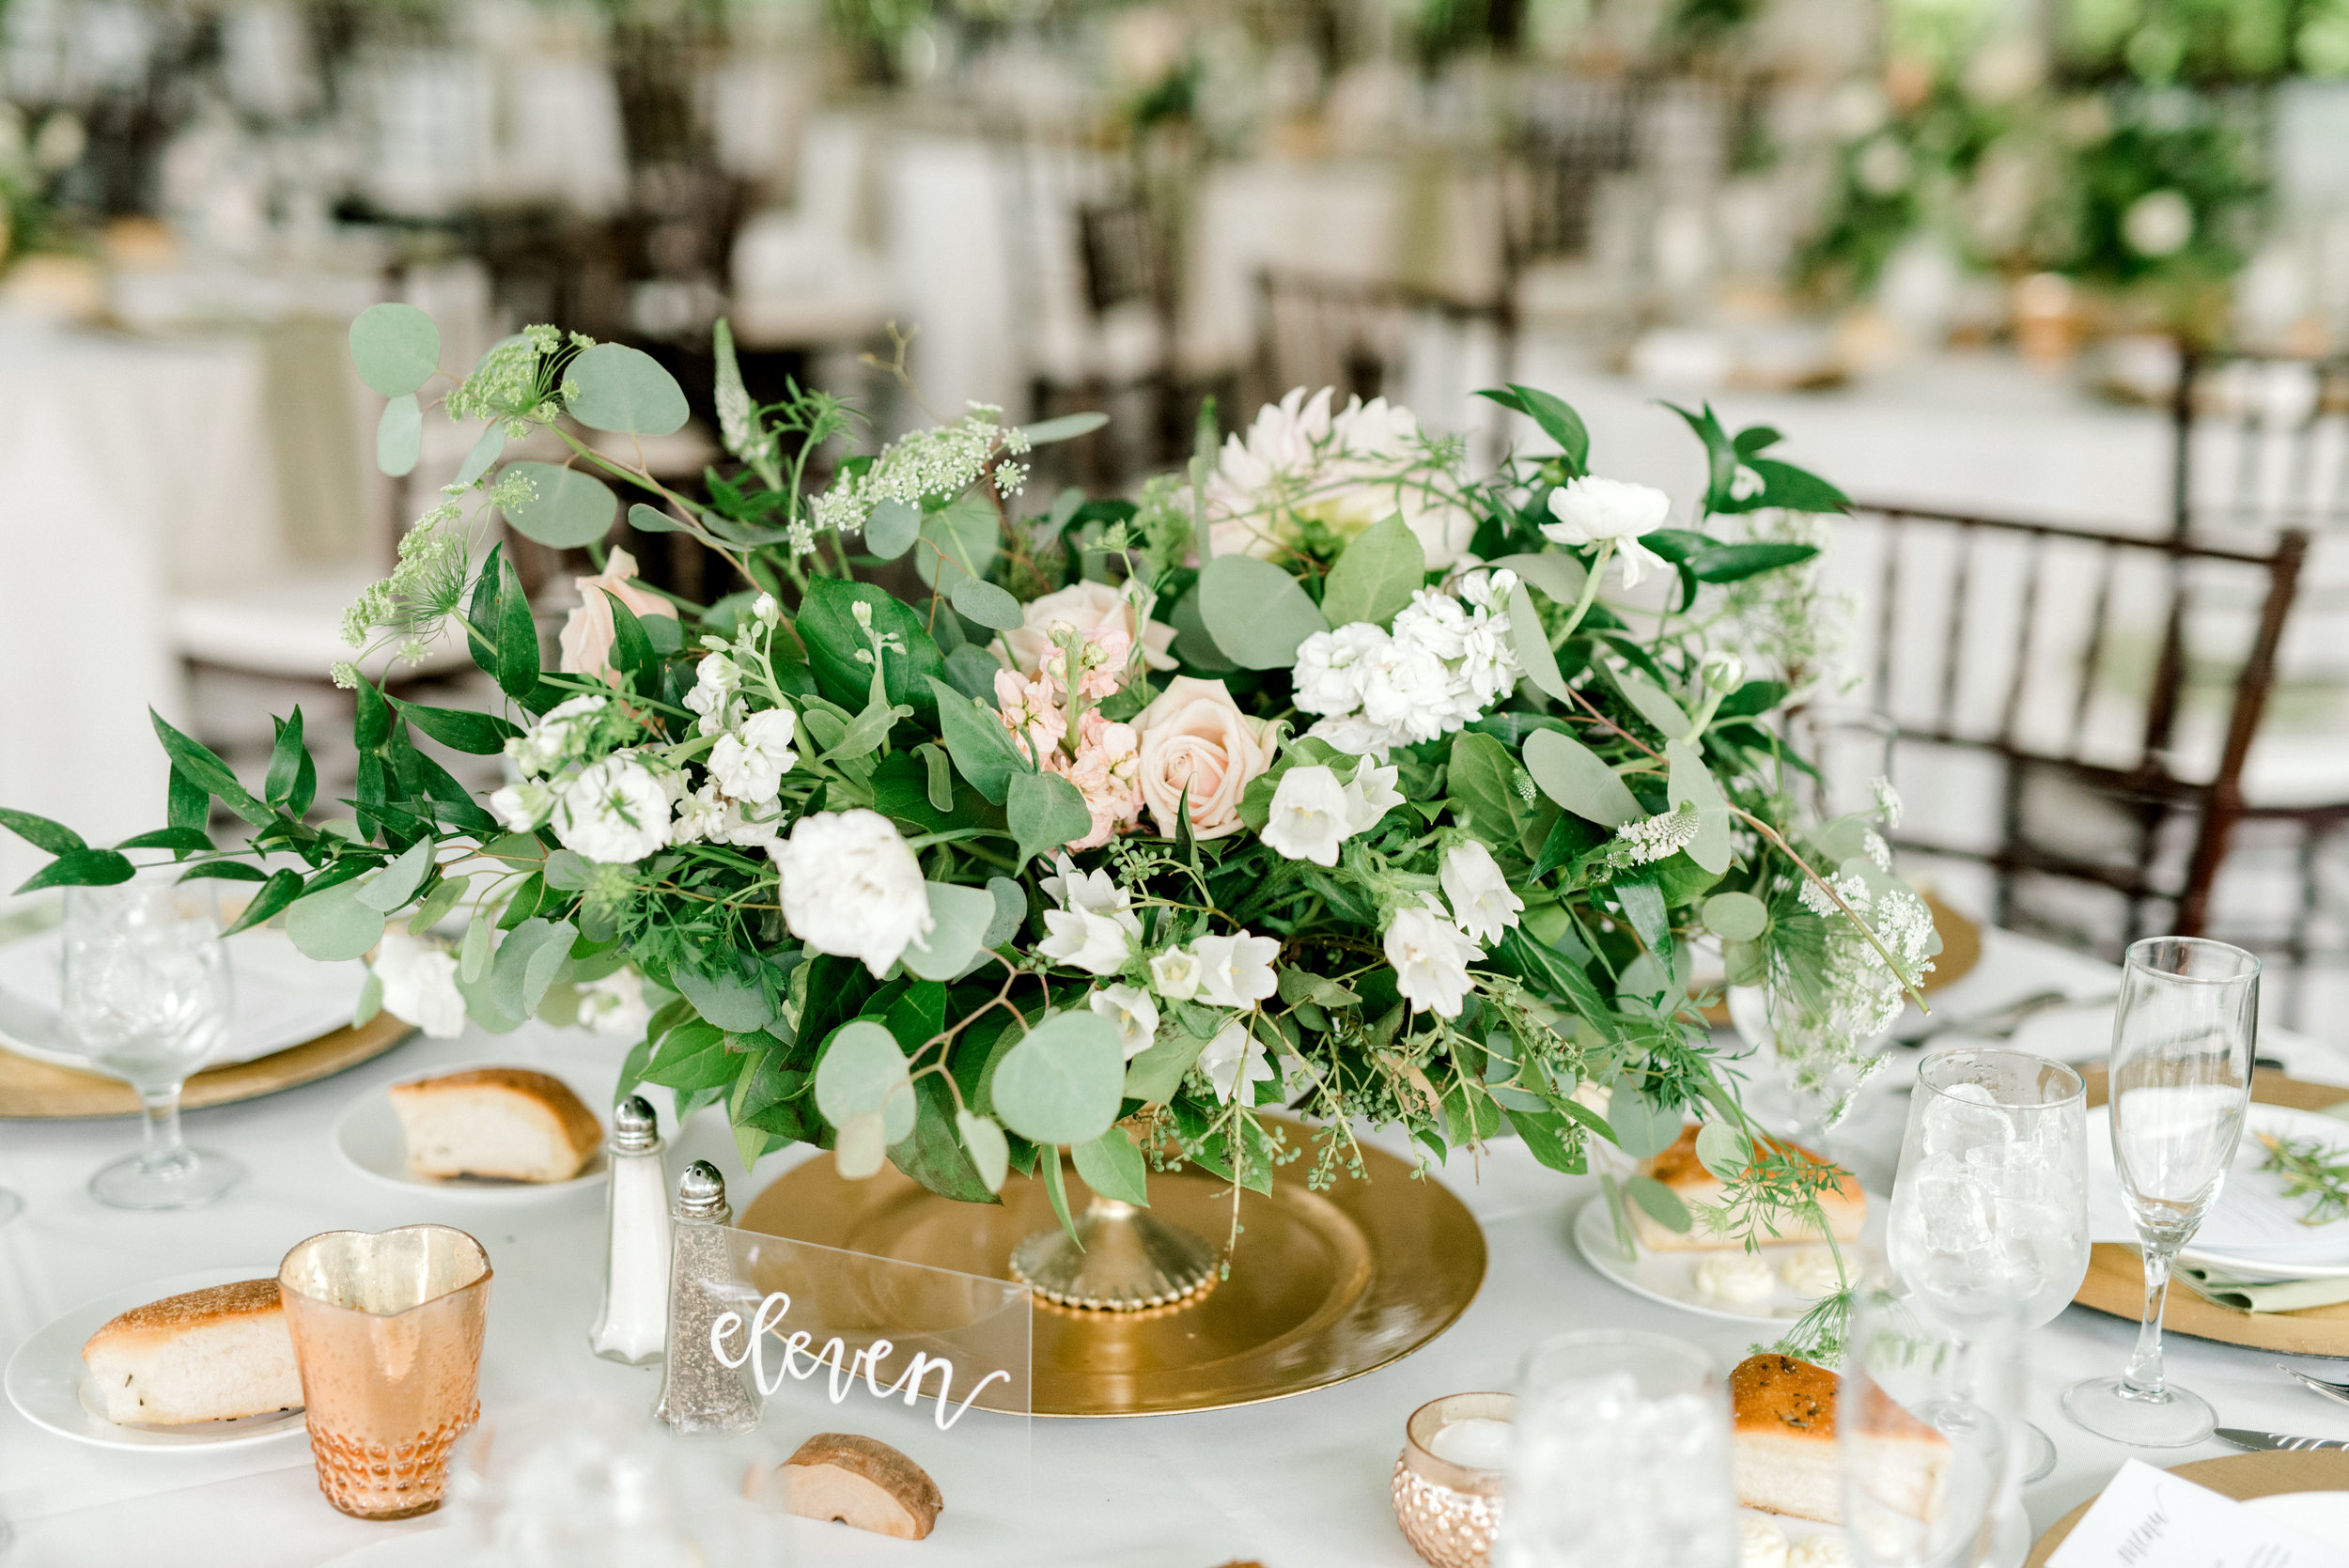 Wild green centerpieces with white and blush flowers add a bit of nature to this white and gold reception at this bright boho chic Tyler Gardens wedding in Bucks County